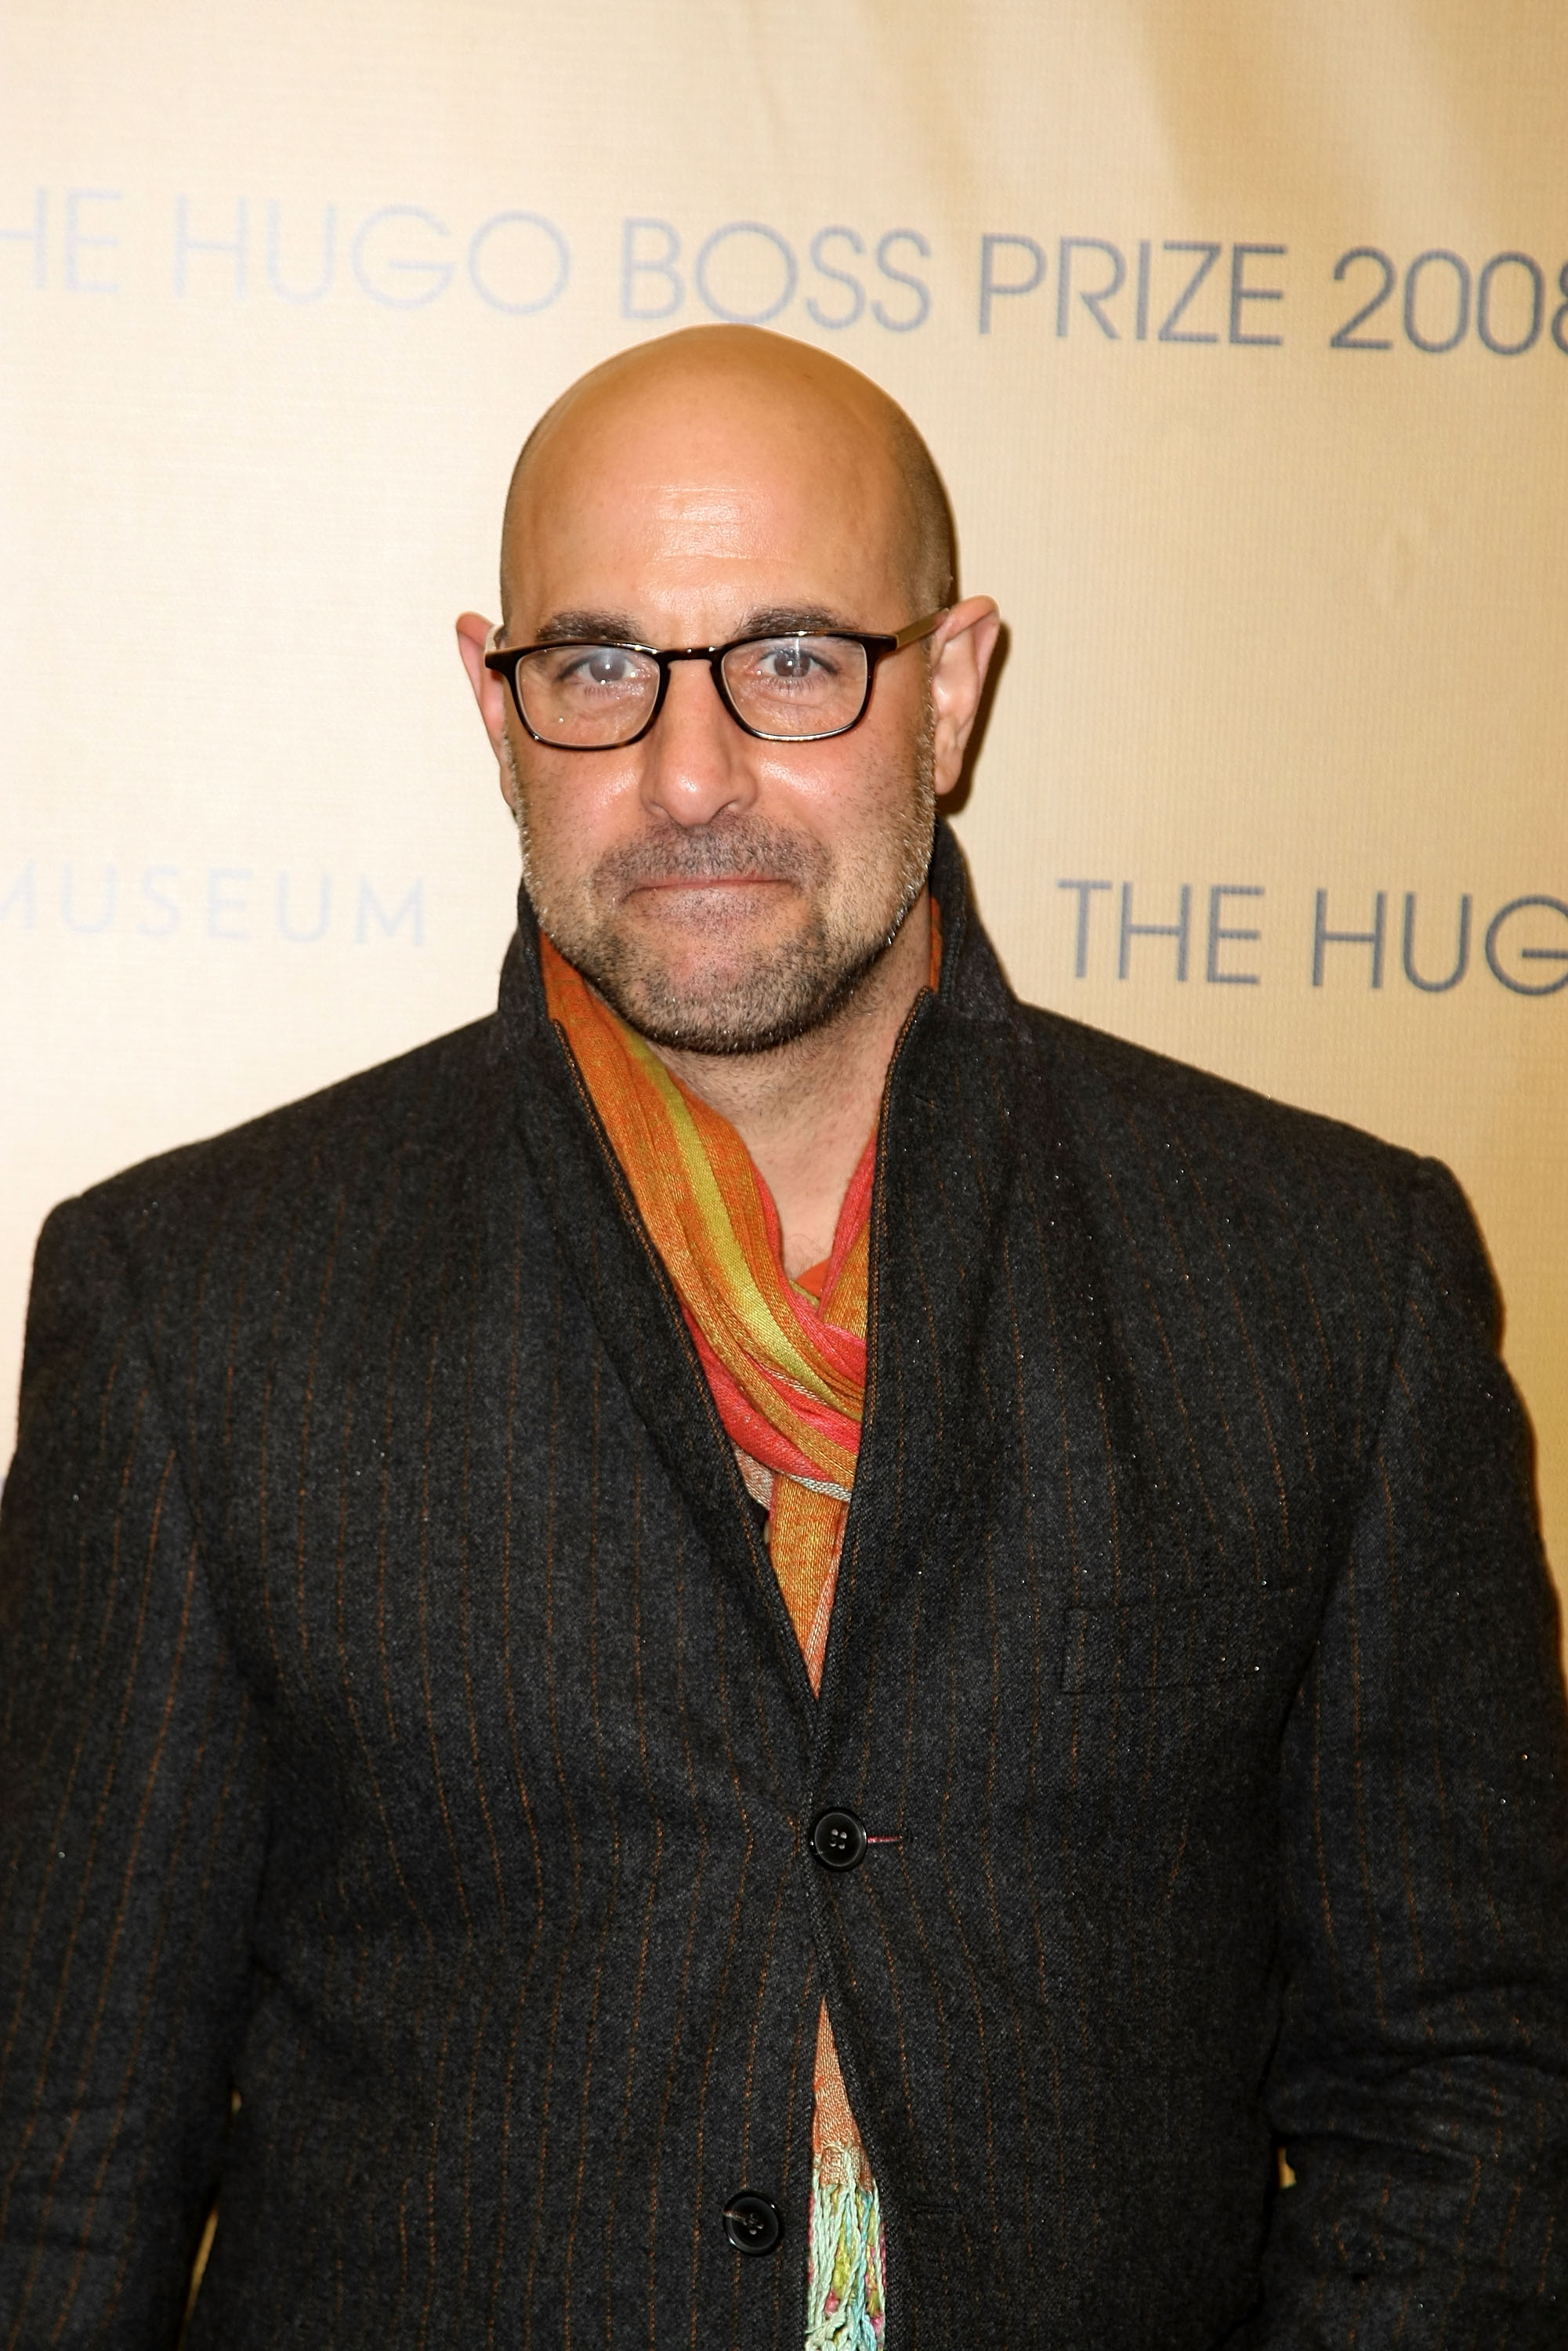 Stanley Tucci kommt am 13. November 2008 beim Hugo Boss Prize 2008 im Solomon R. Guggenheim Museum in New York City an. | Quelle: Getty Images